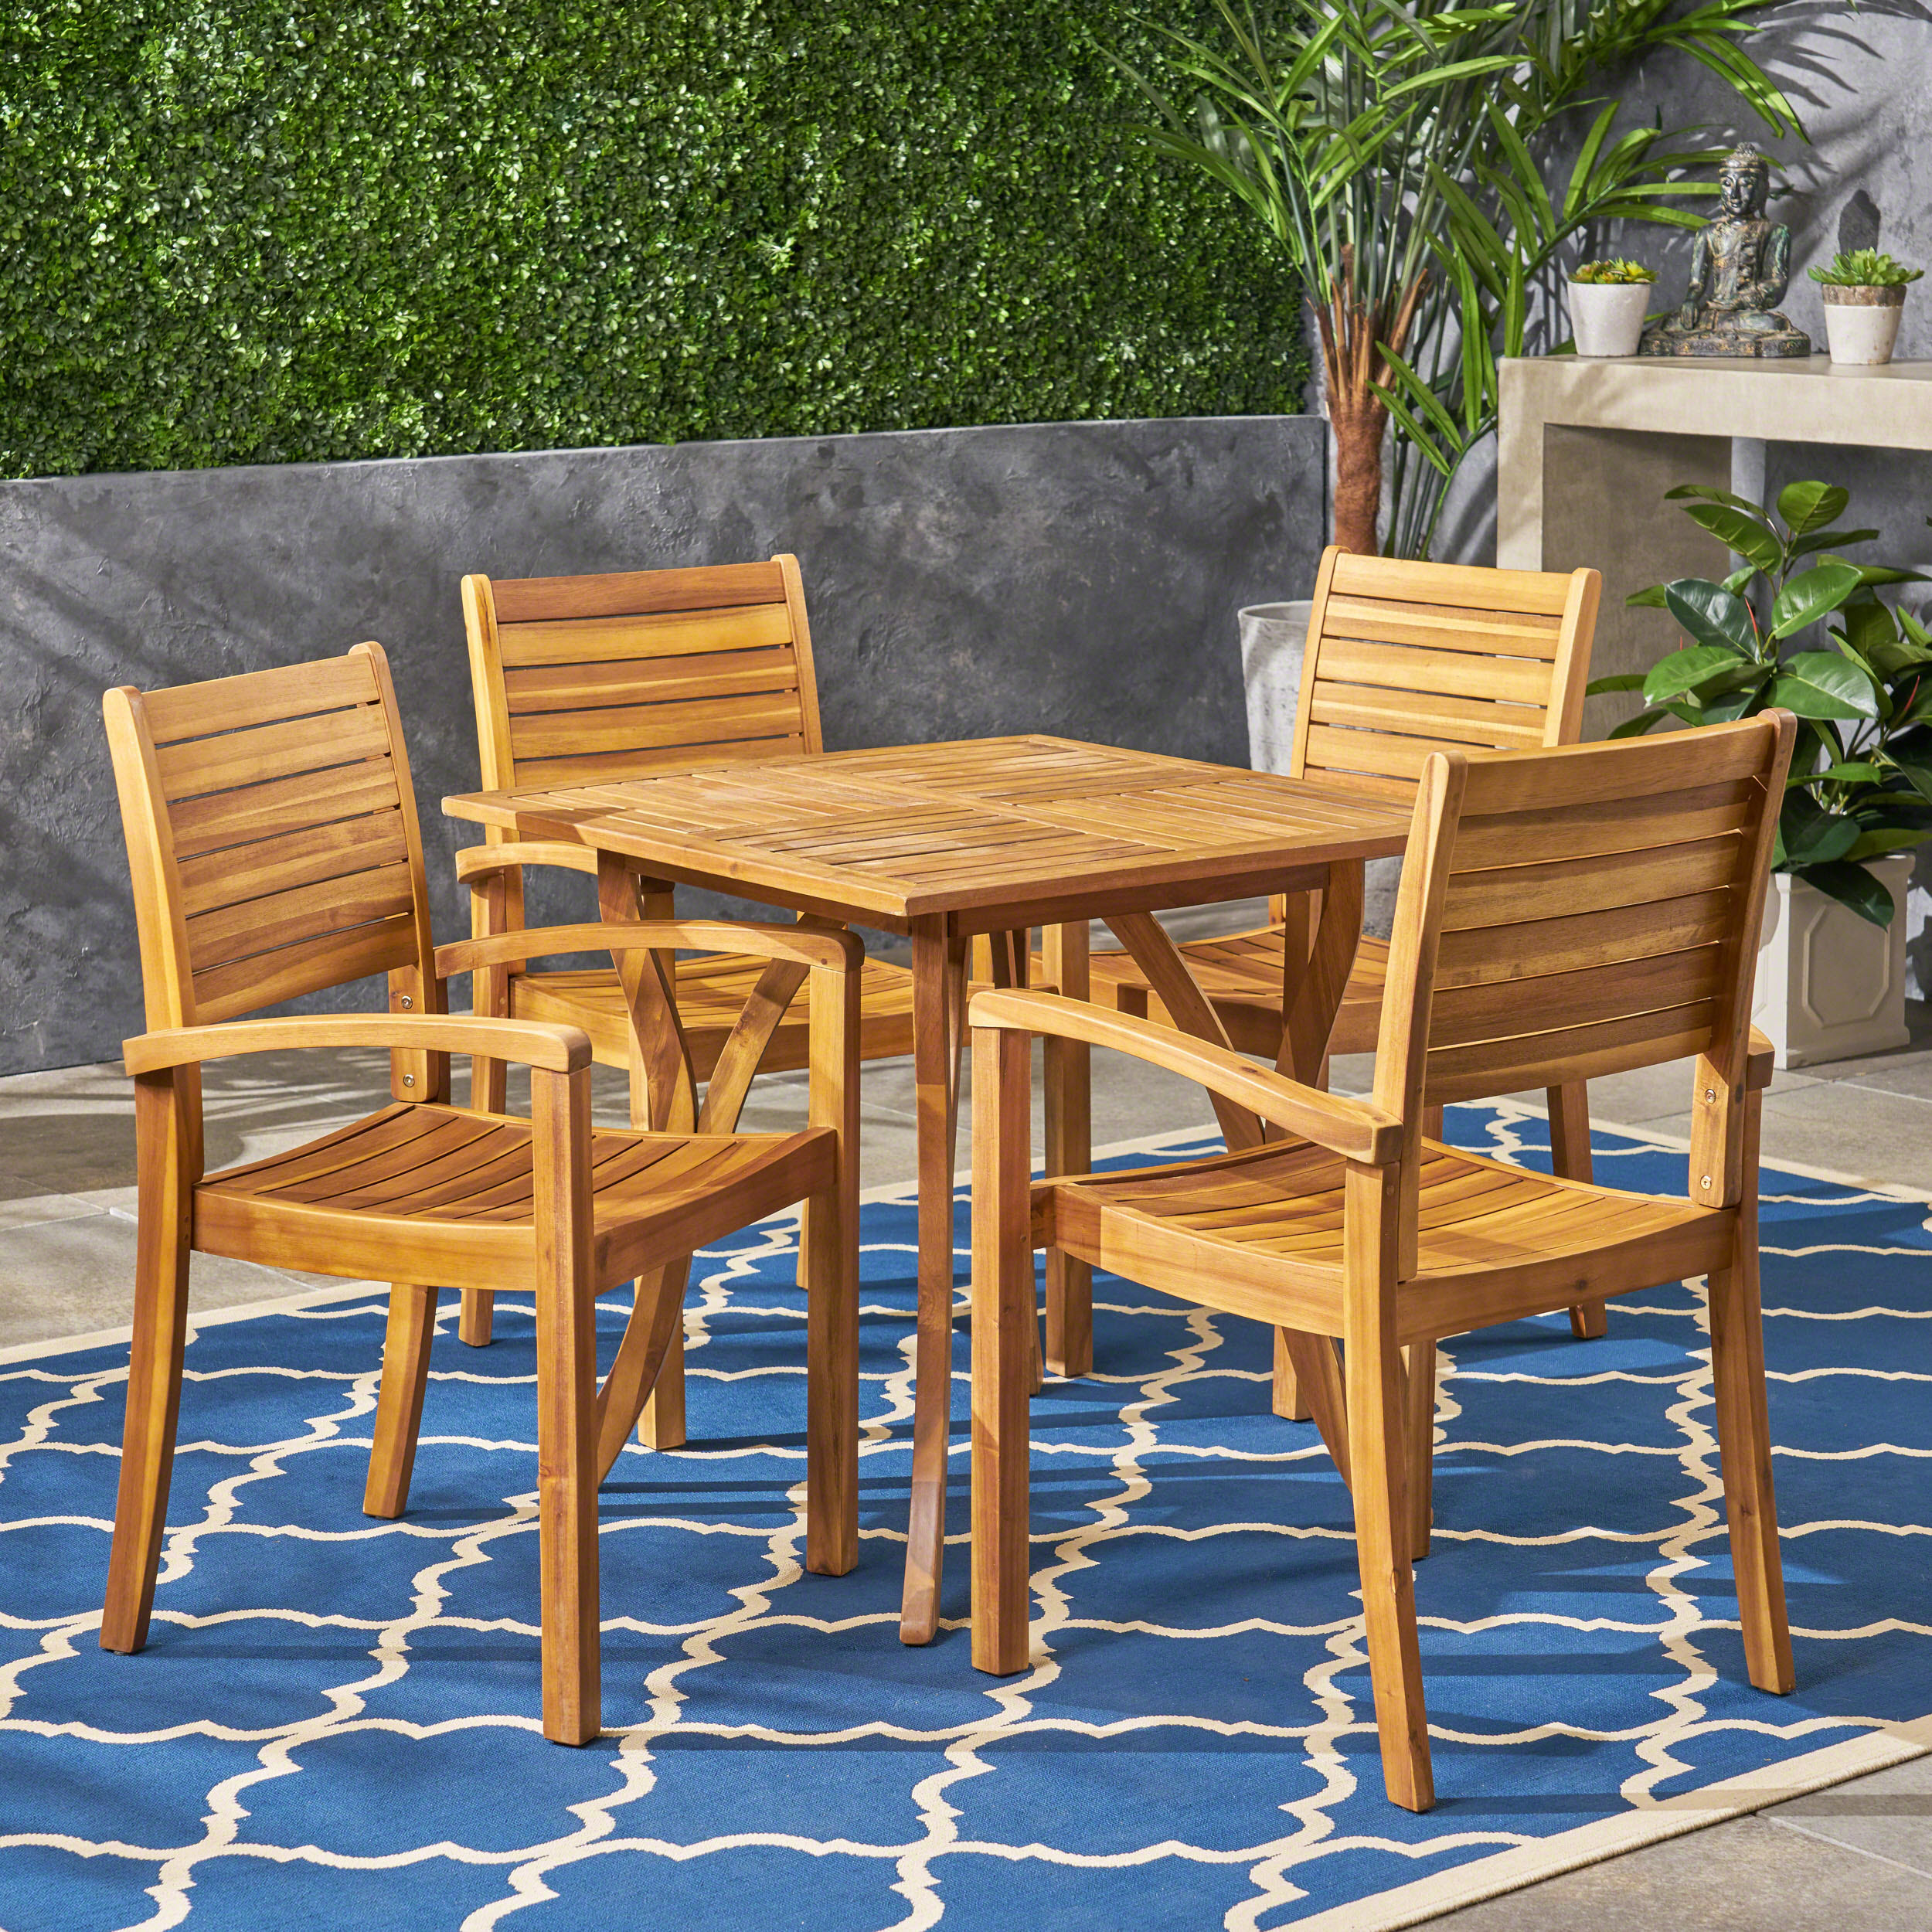 Carr Outdoor 4 Seater Square Acacia Wood Dining Set, Teak Finish